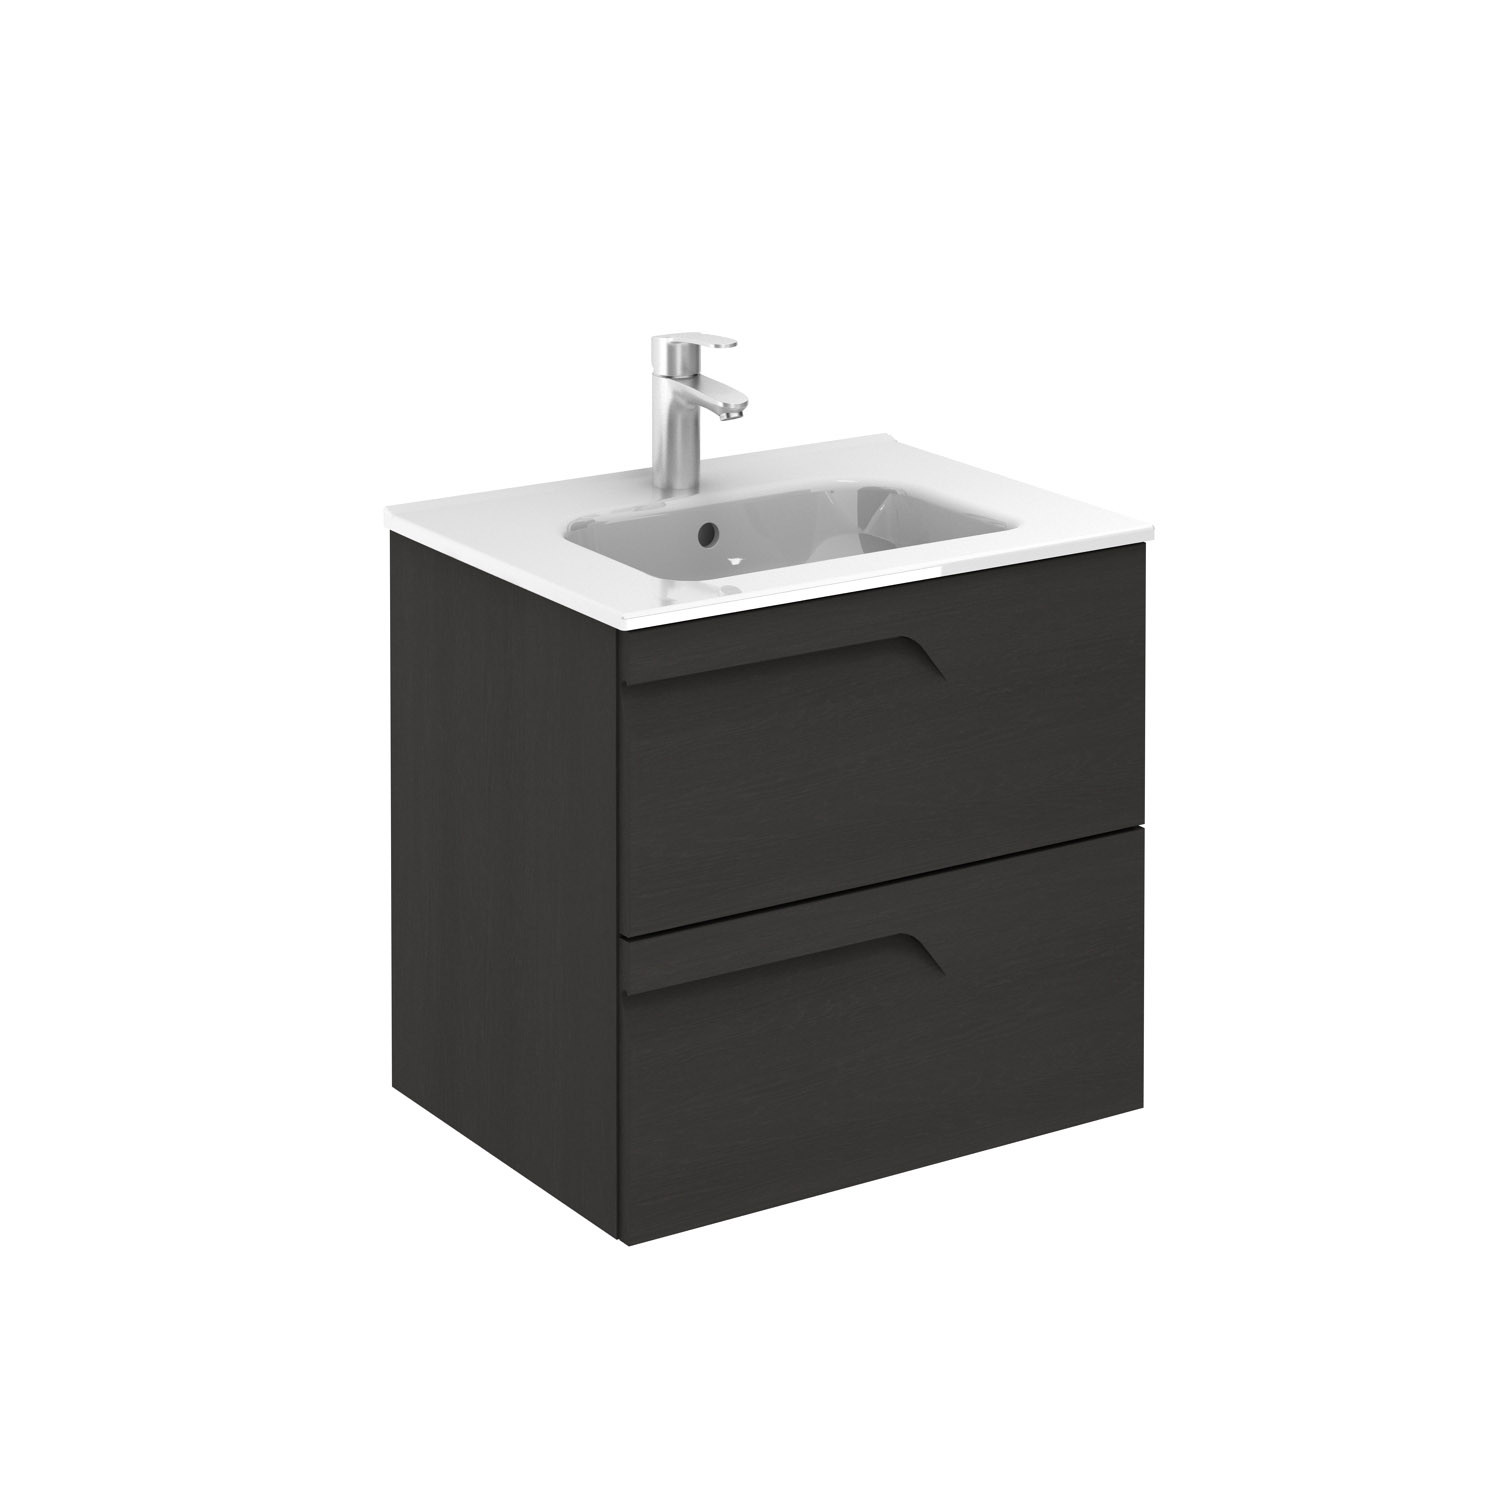 Vitale 600mm Slimline 2 Drawer Wall Hung Vanity Unit Urban Grey Frontlinebathrooms Com